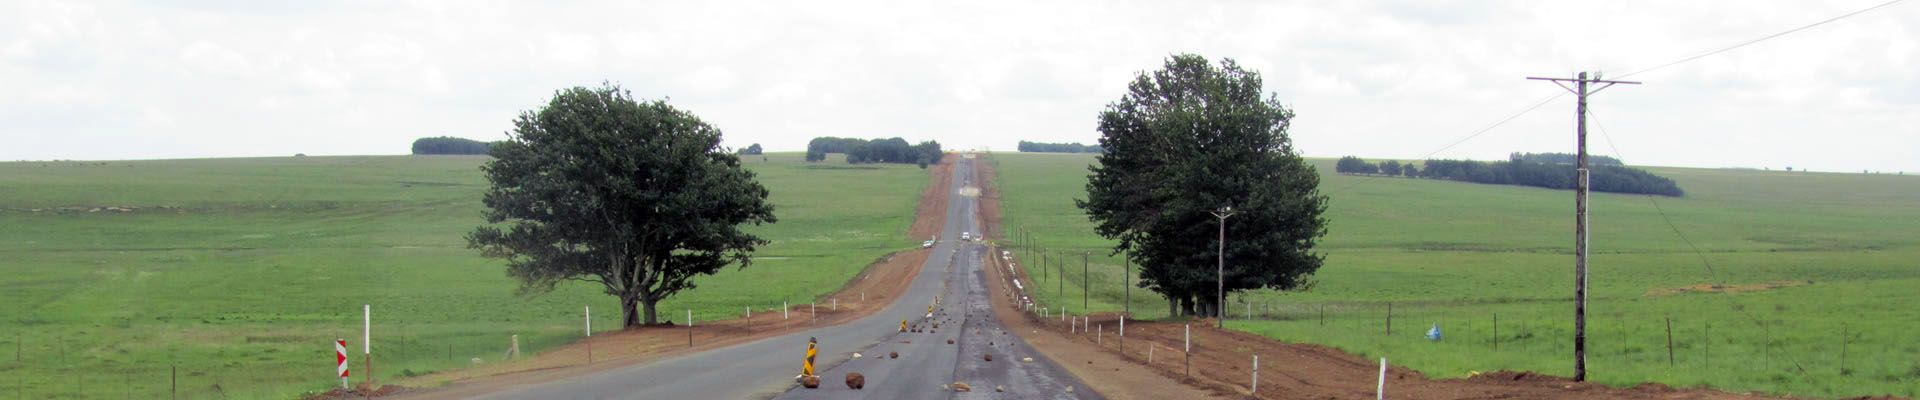 The South African National Roads Agency